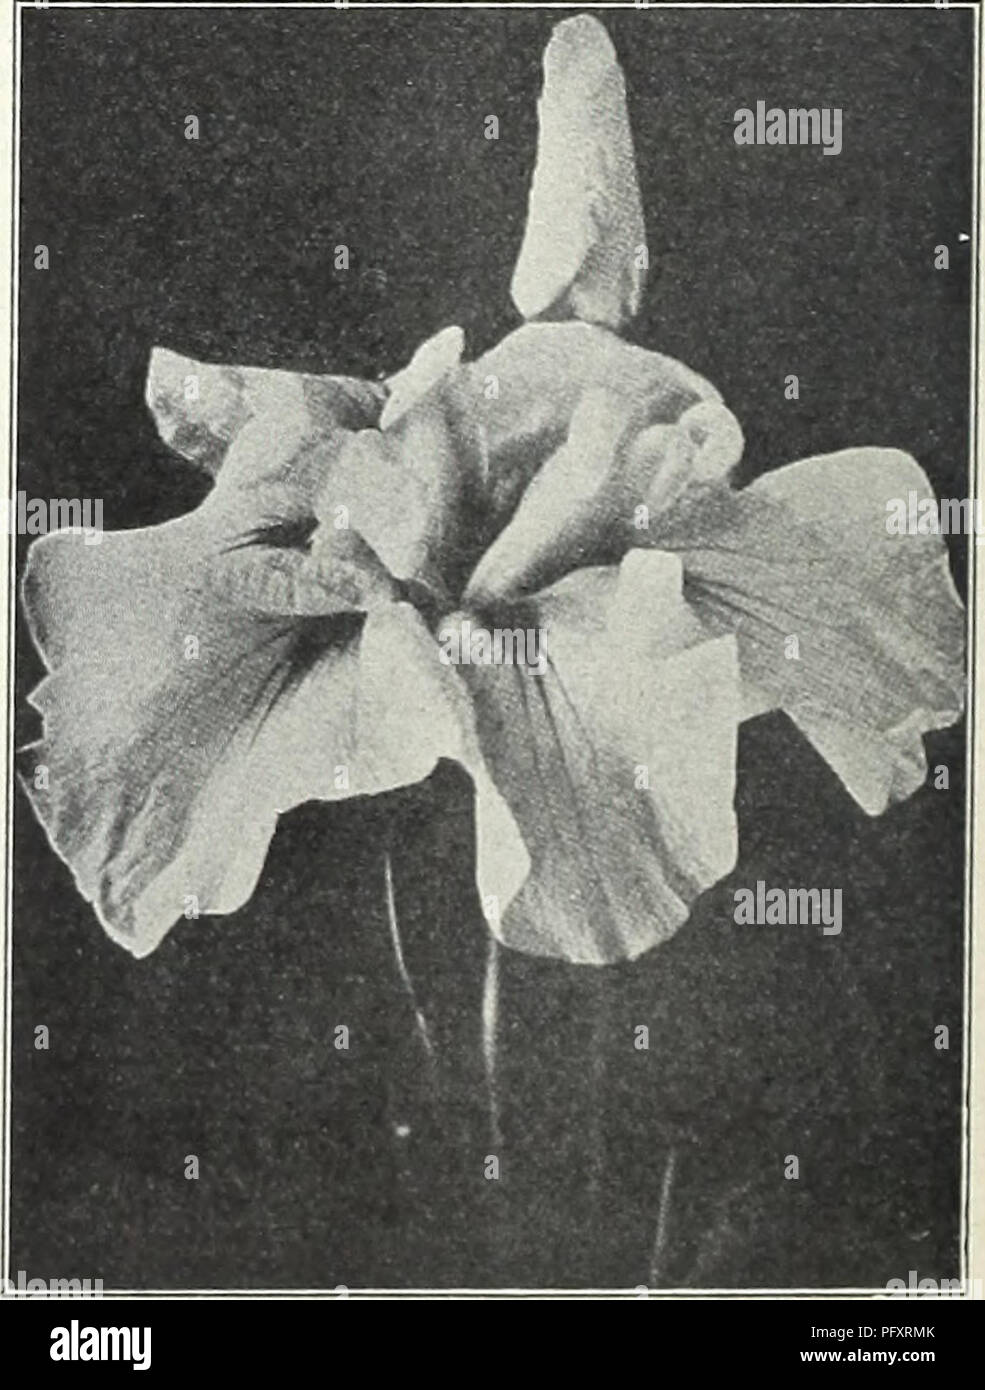 . Currie's garden annual : spring 1934 59th year. Flowers Seeds Catalogs; Bulbs (Plants) Seeds Catalogs; Vegetables Seeds Catalogs; Nurseries (Horticulture) Catalogs; Plants, Ornamental Catalogs; Gardening Equipment and supplies Catalogs. CURRIE'S SUPERB HOLLYHOCKS Currie's Superb Hollyhocks GERMAN IRIS ed from named varieties of every known shade of color, and can be June or July will produce plants for blooming the next summer. NEW HOLLYHOCKS TRIUMPH—This new variety brings out an entirely distinct strain growing 4 to 5 feet high and is of a branching habit, all the stems being studded with  - Stock Image